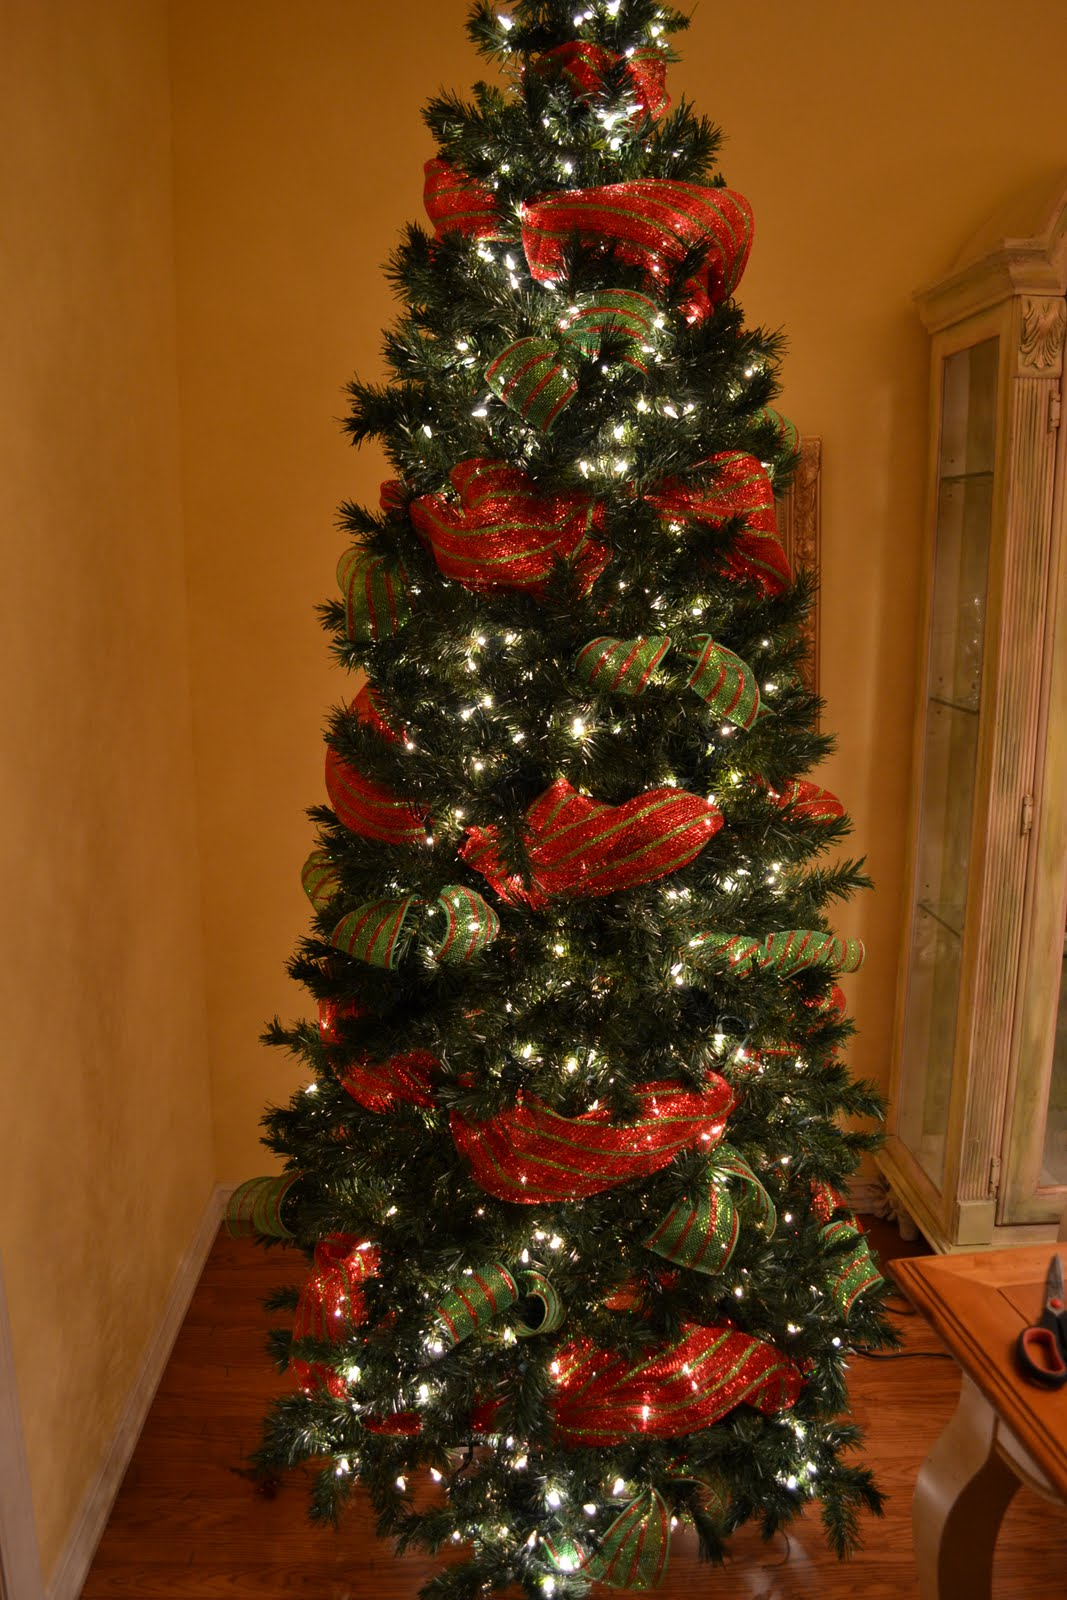 Christmas tree decorations with mesh - photo#52